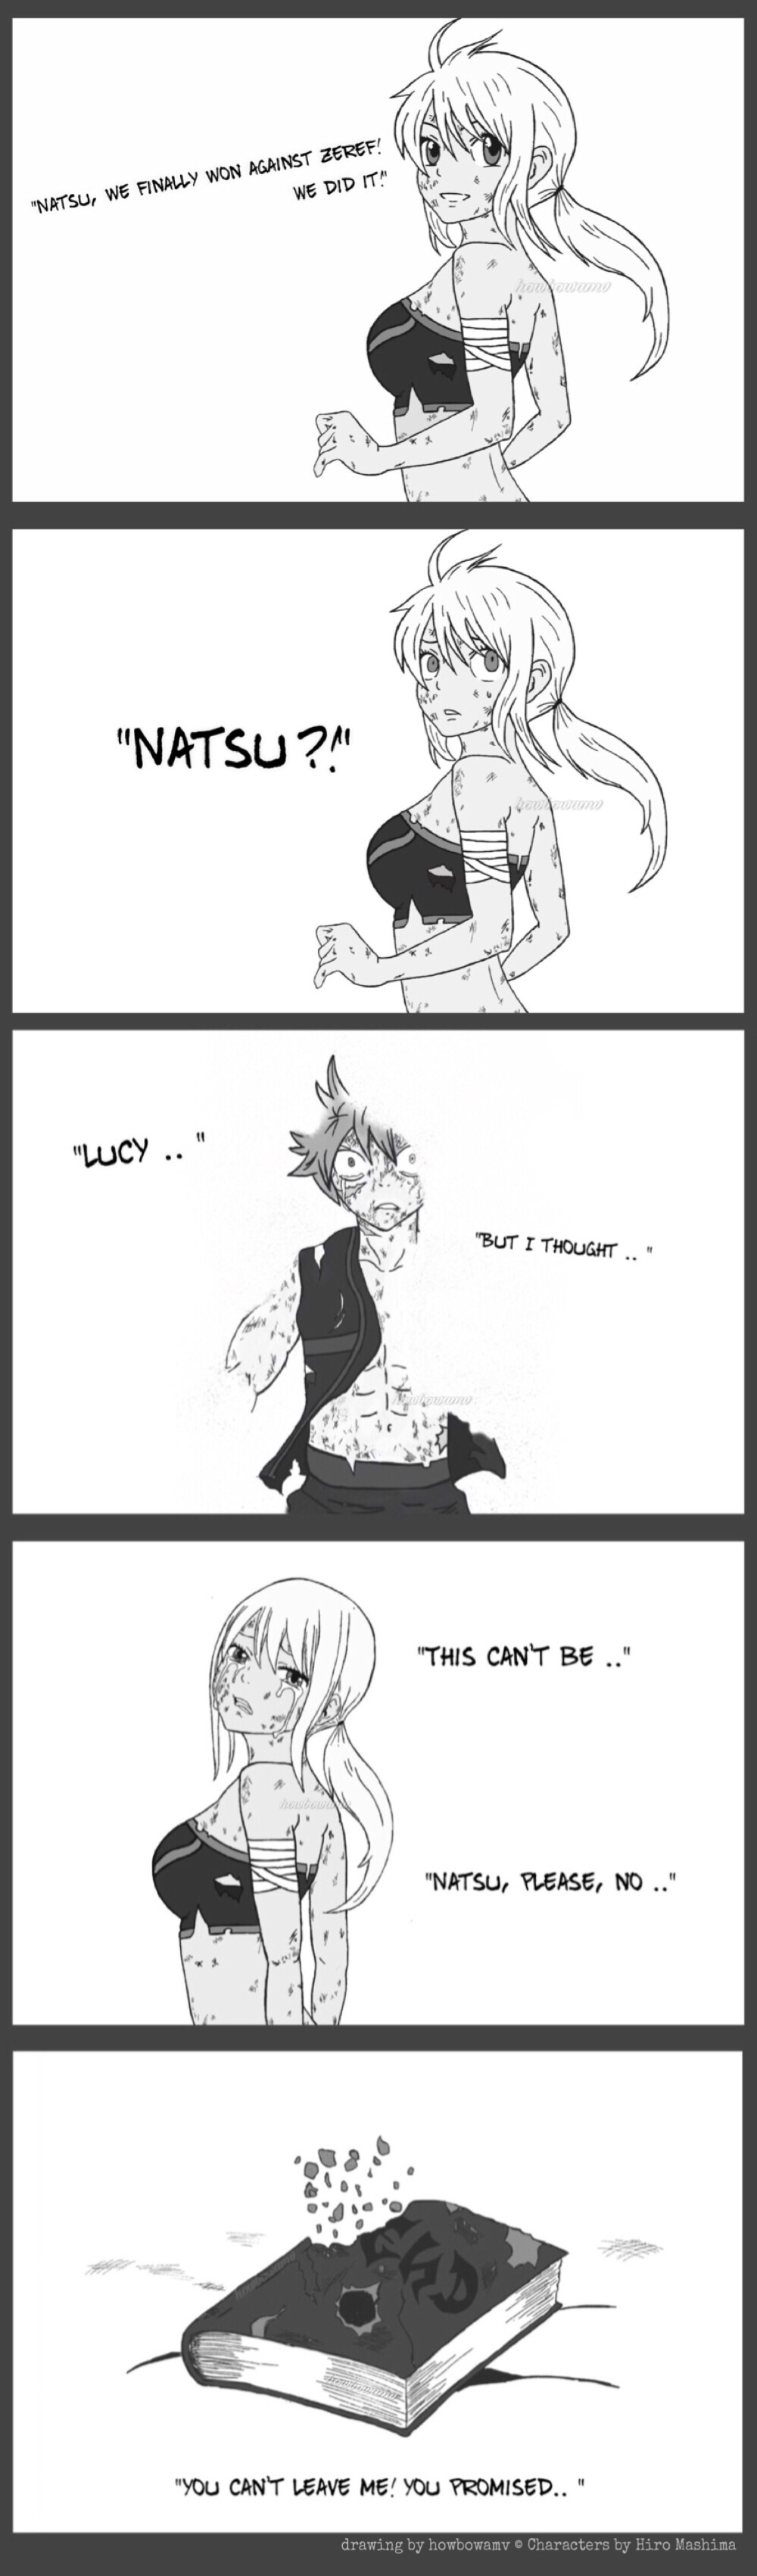 Fairy Tail Fanfiction End Revealed: After Fairy Tail Defeated Zeref (Nalu Fanfic) By Howbowamv